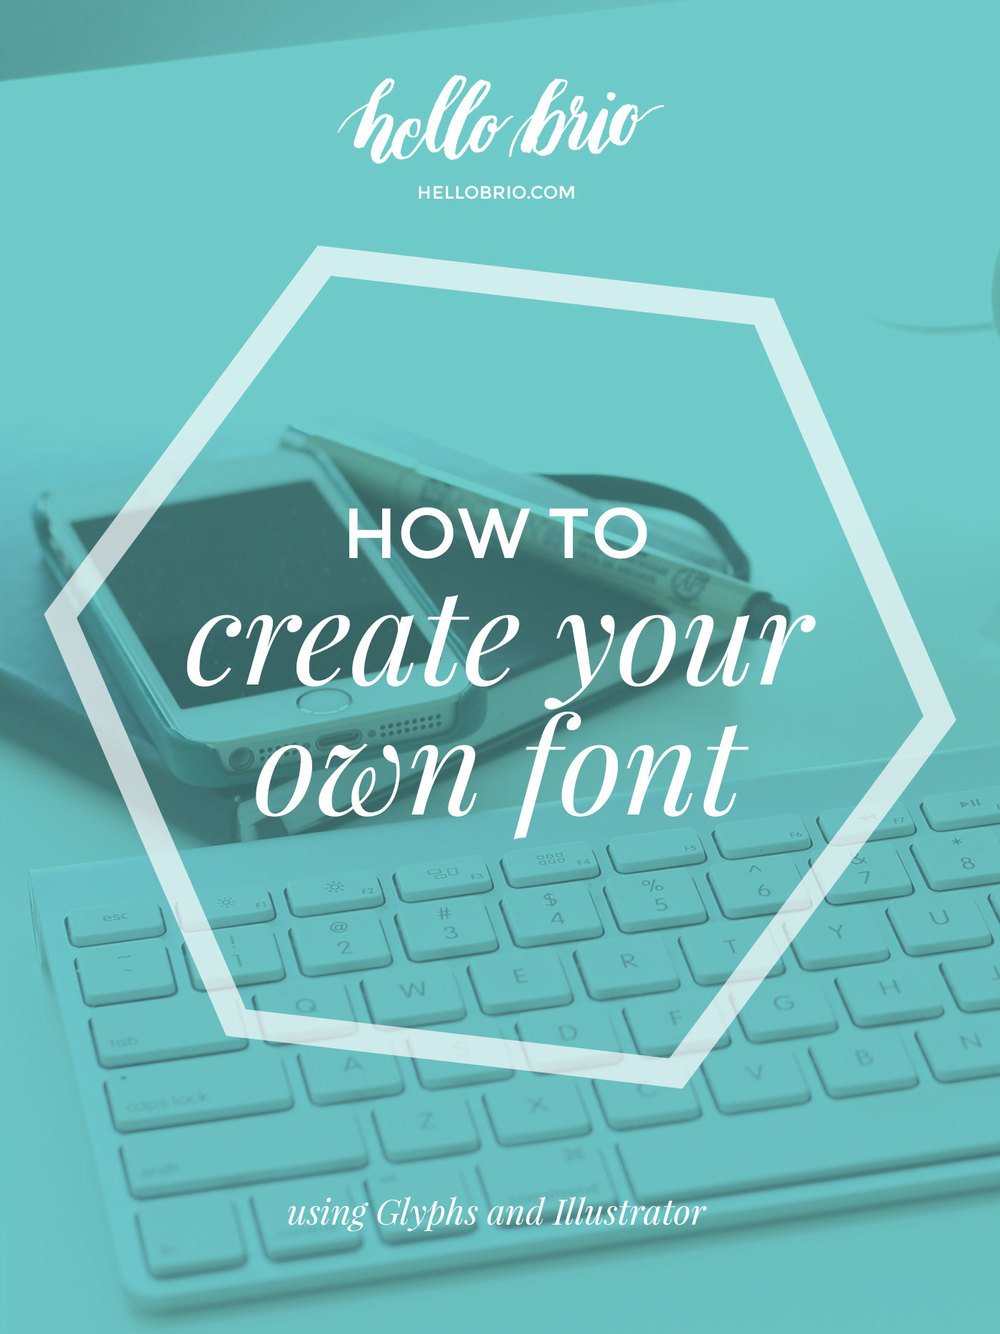 How To Create Your Own Font Using Illustrator And Glyphs App  Tutorial On  Hellobrio